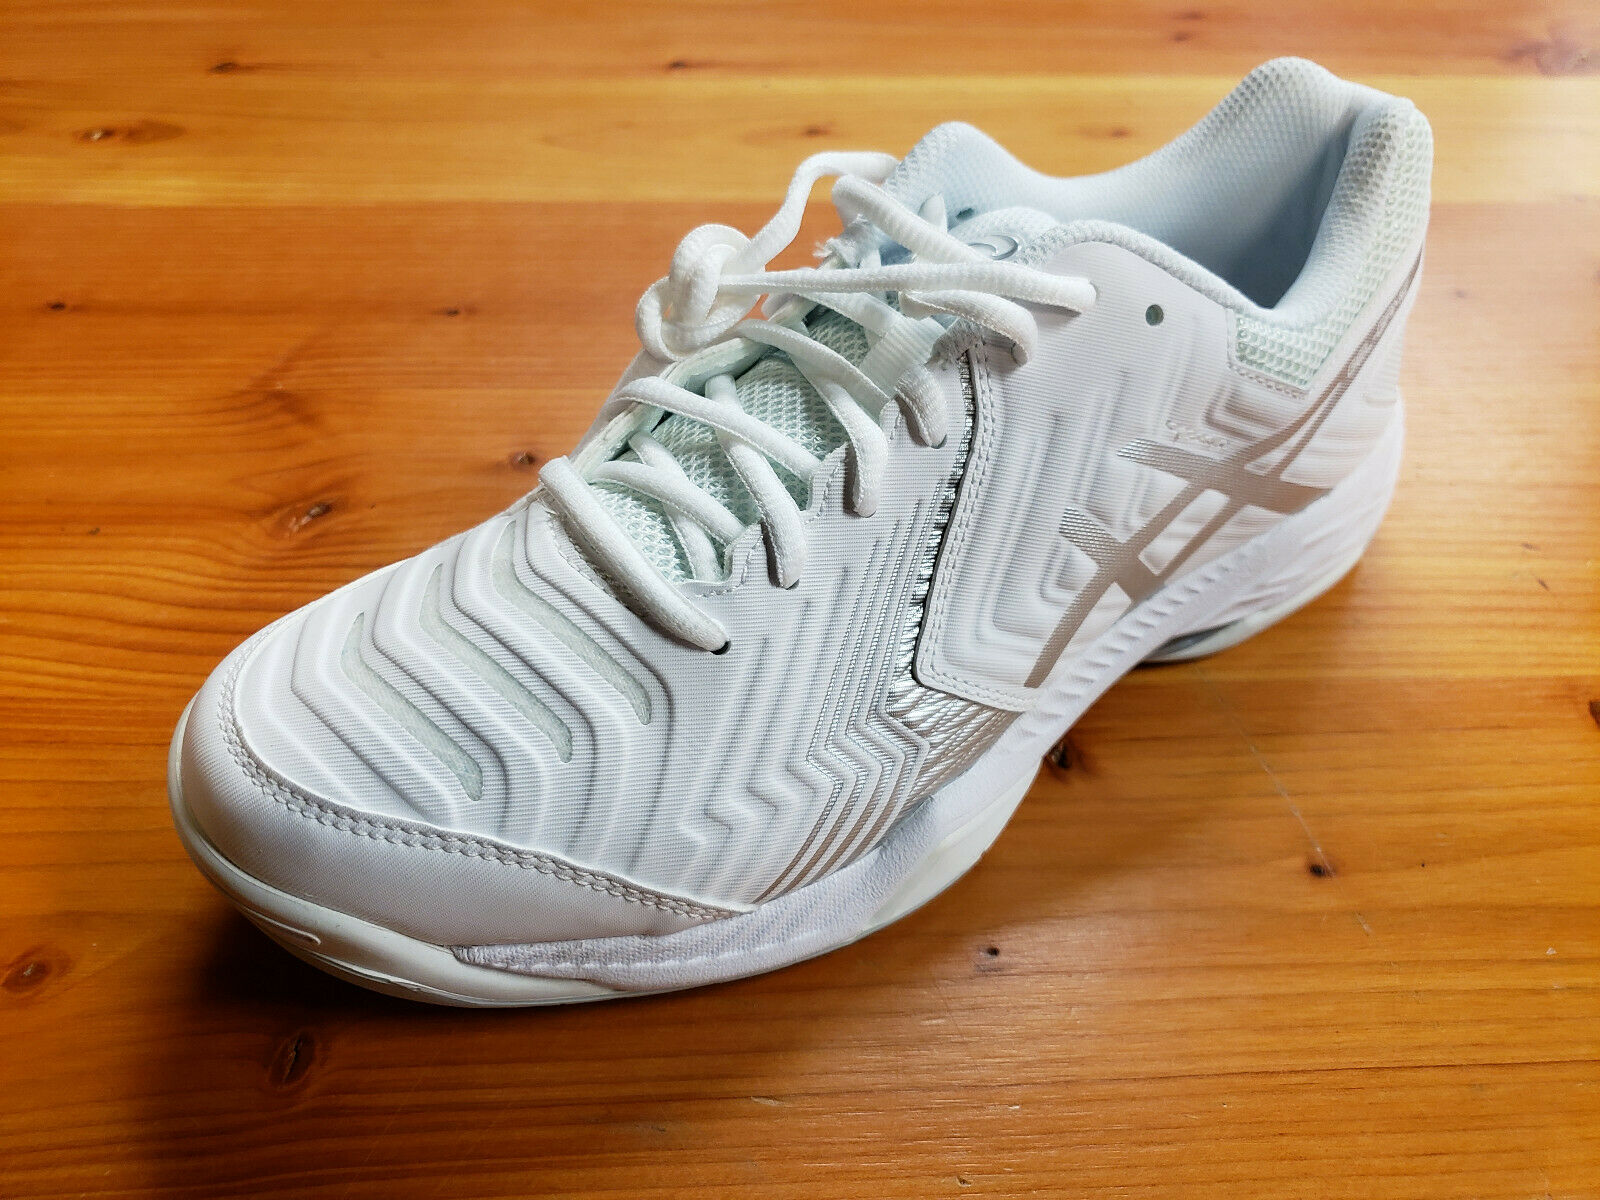 Women's Asics Gel-Game Gel-Game Gel-Game 6 Preowned Tennis shoes Size 9 9a4293